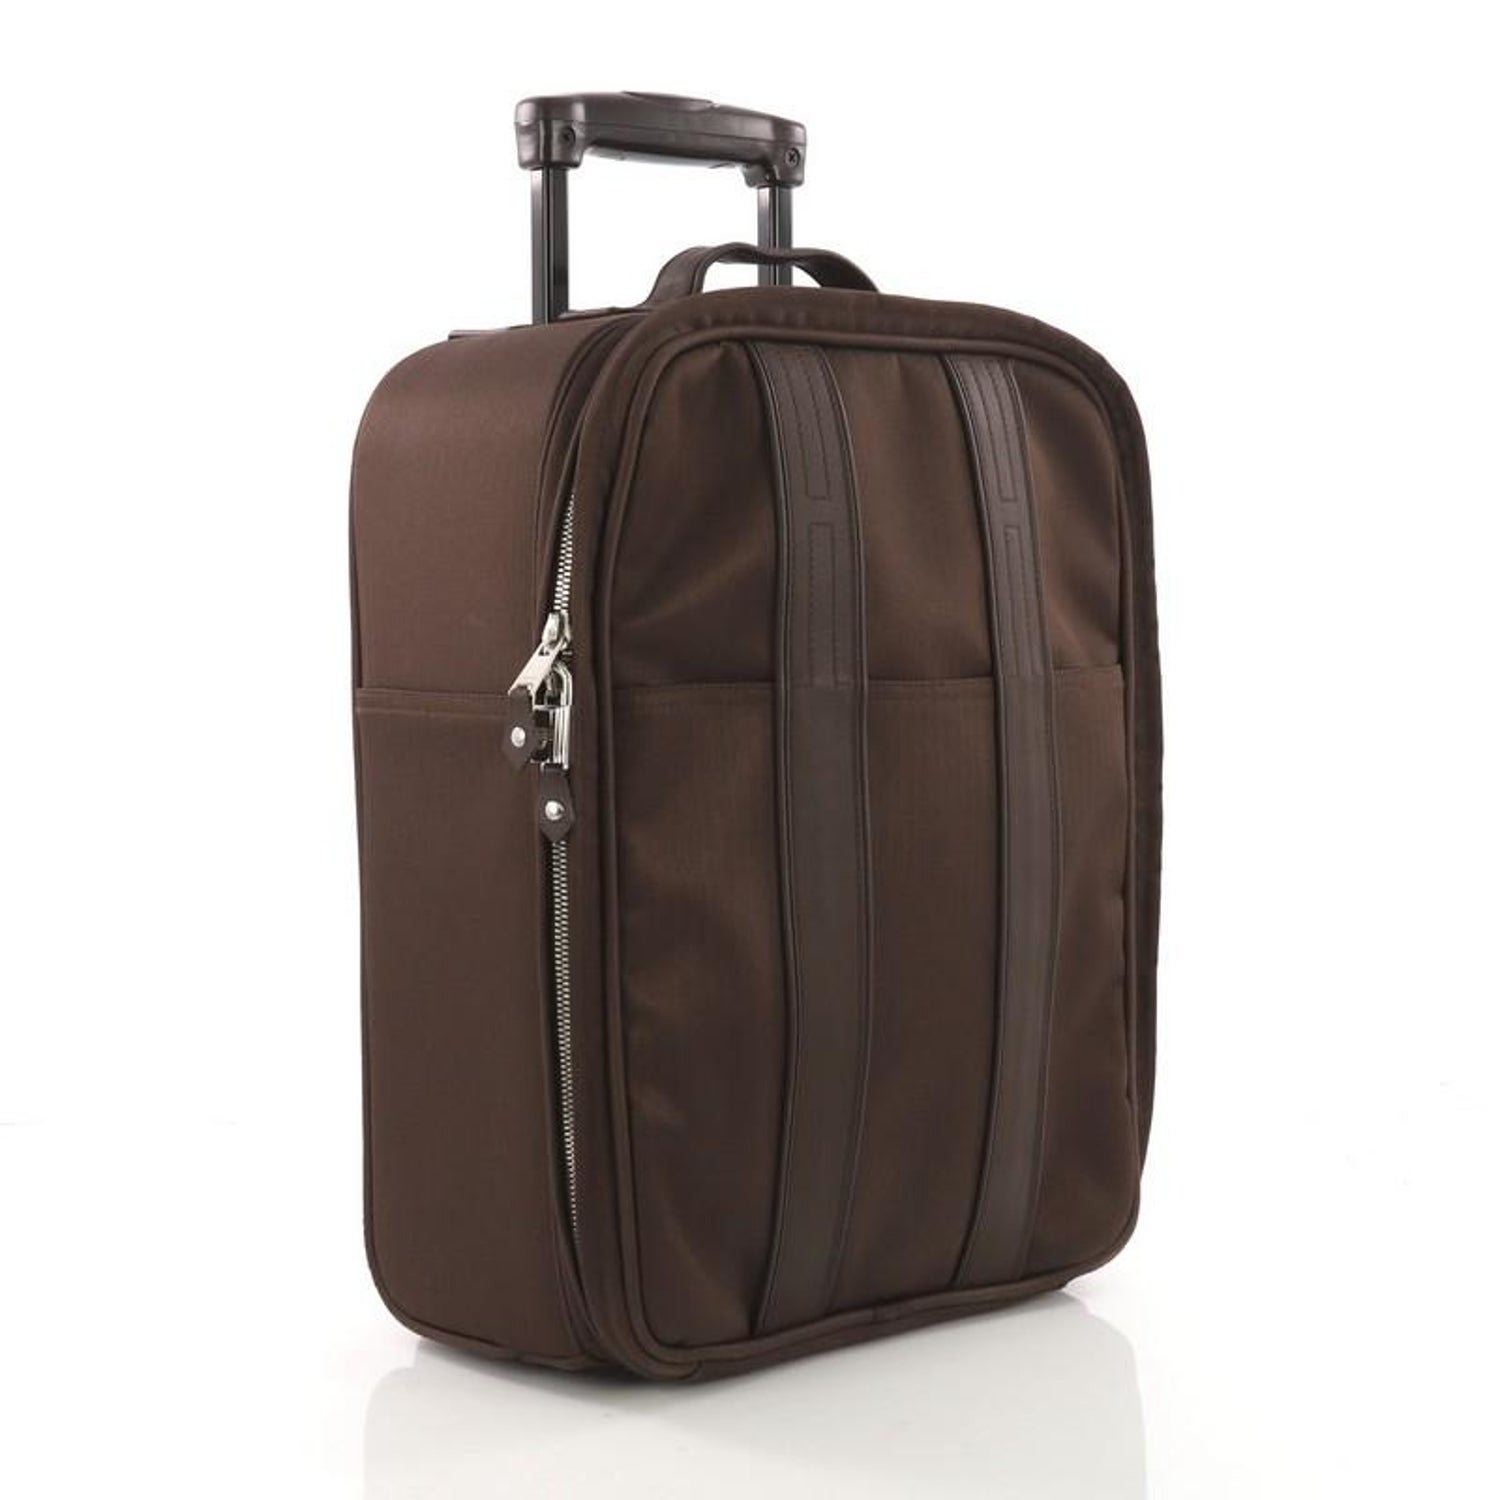 6961ded7f605 Hermes Acapulco Carry-On Toile and Leather at 1stdibs